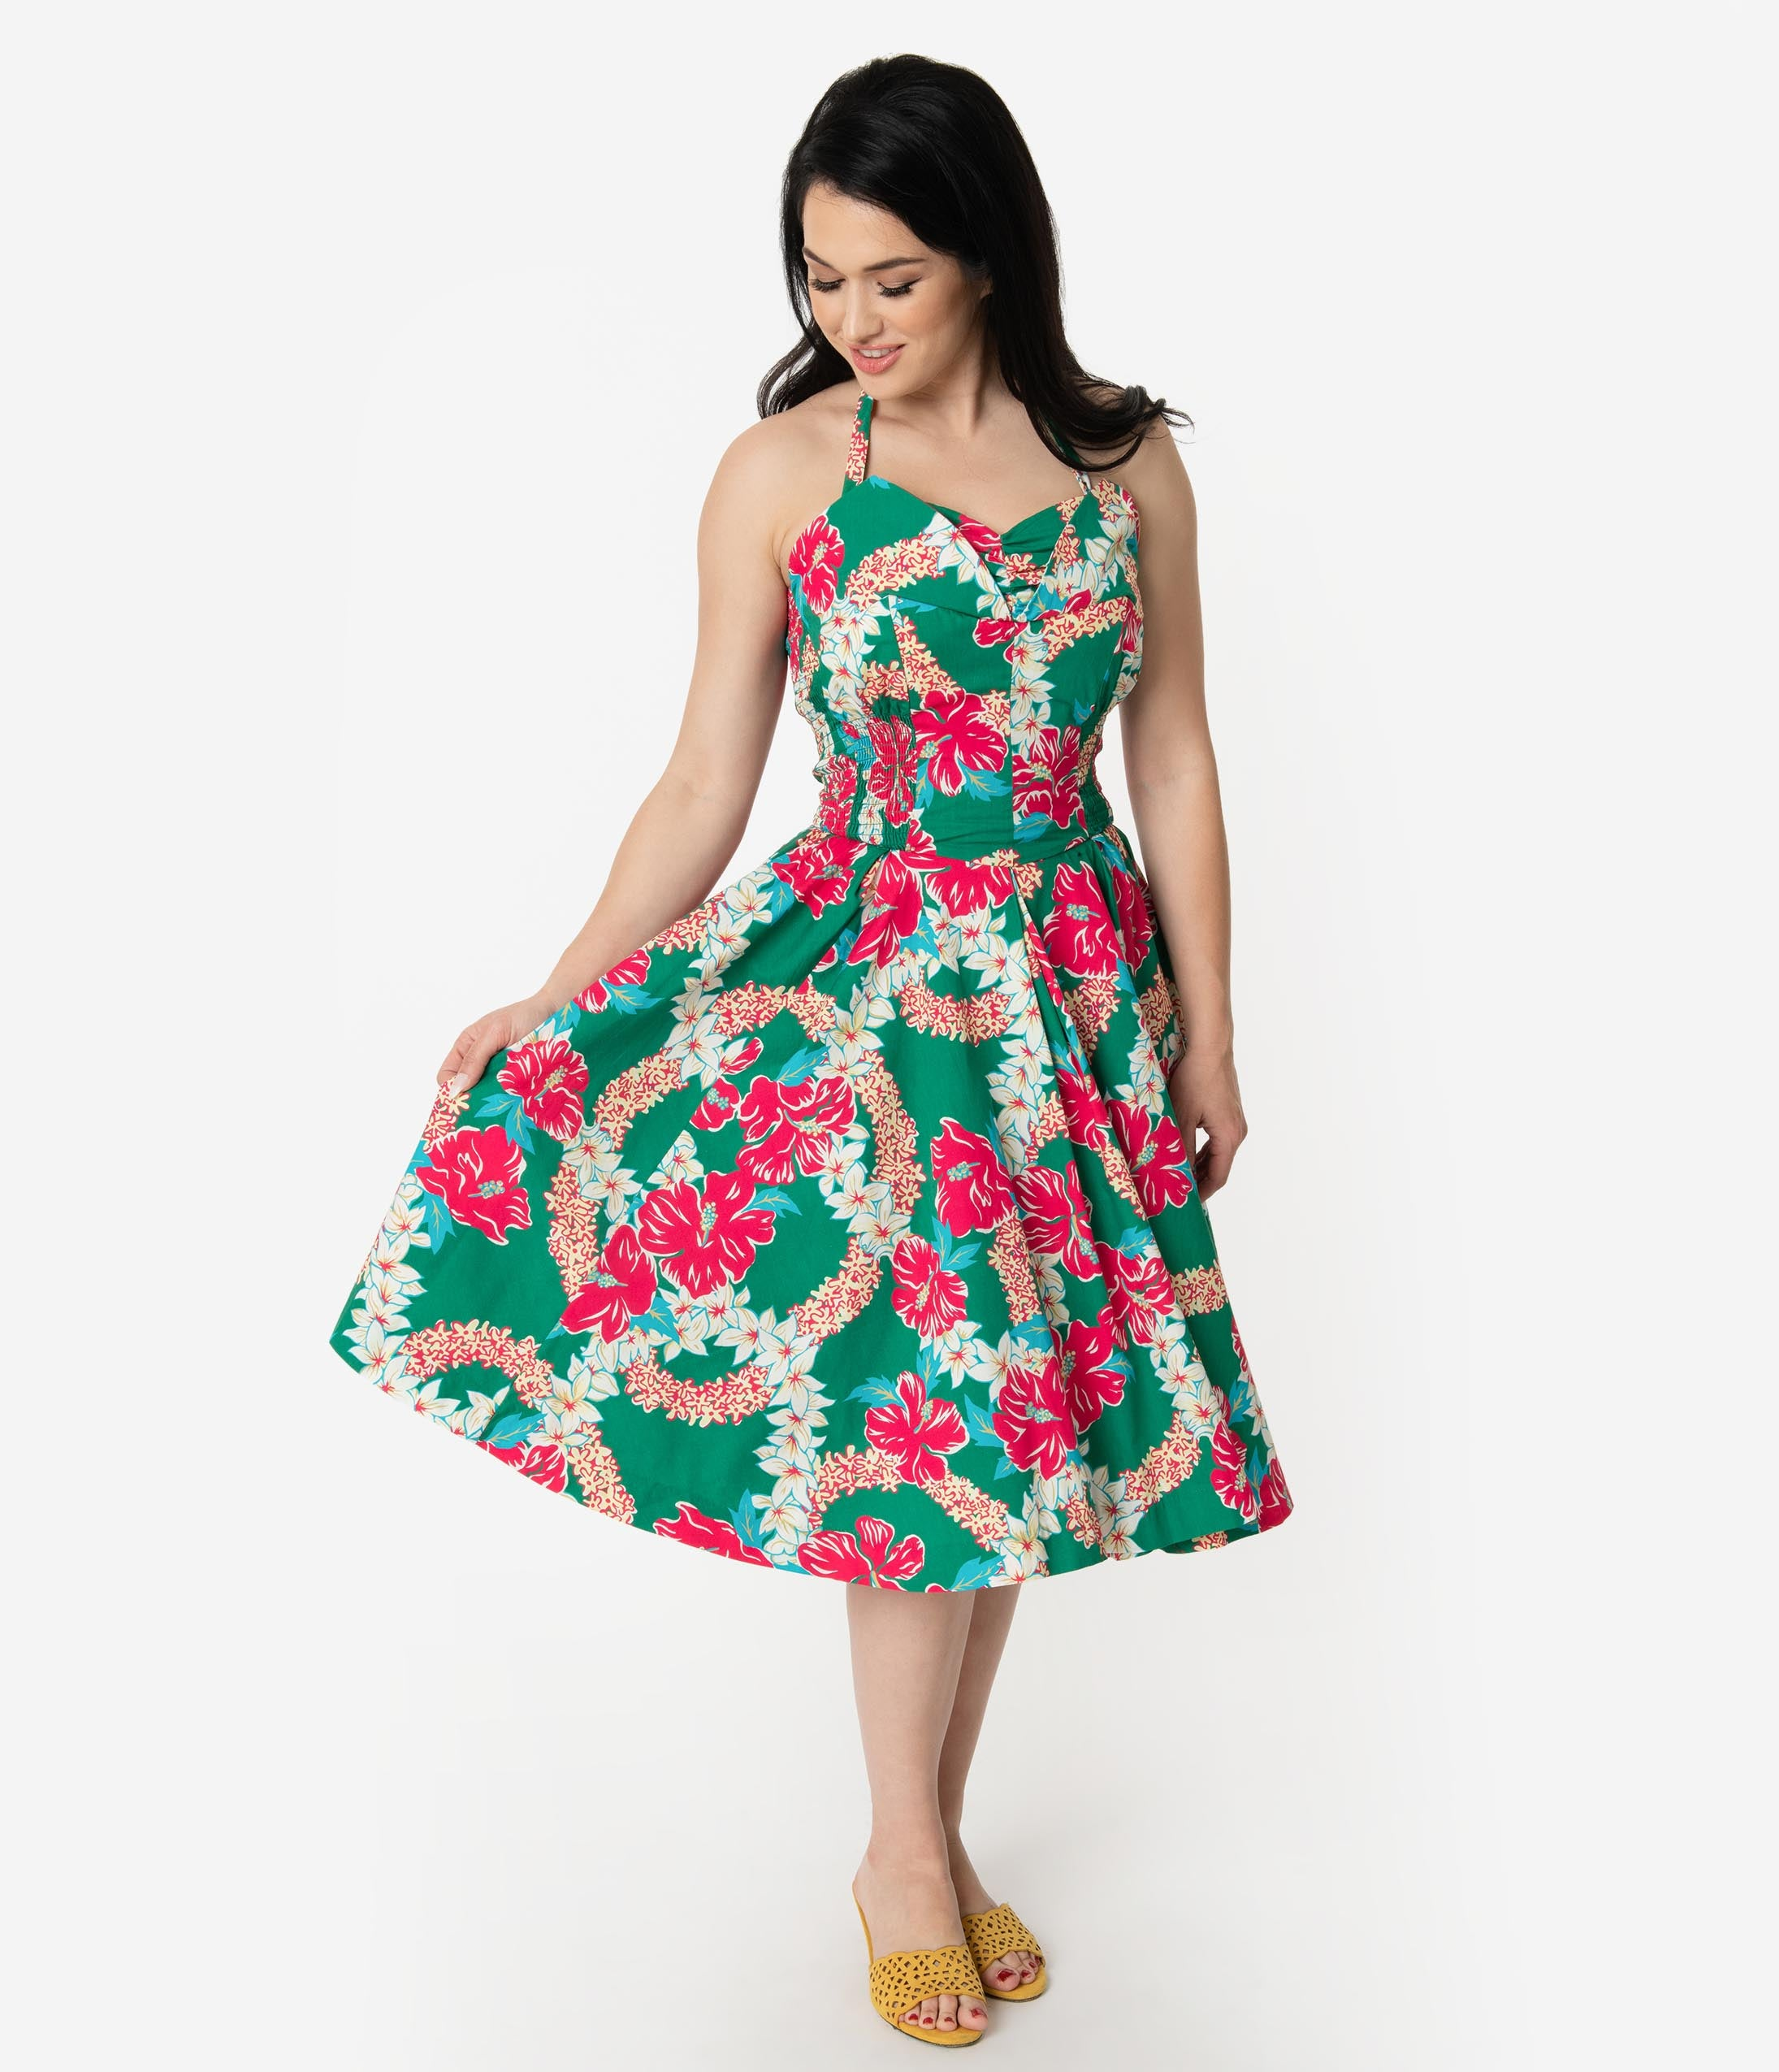 New Fifties Dresses | 50s Inspired Dresses Alfred Shaheen Green  Pink Mala Pua Hibiscus Lei Print Hawaiian Swing Dress $107.00 AT vintagedancer.com